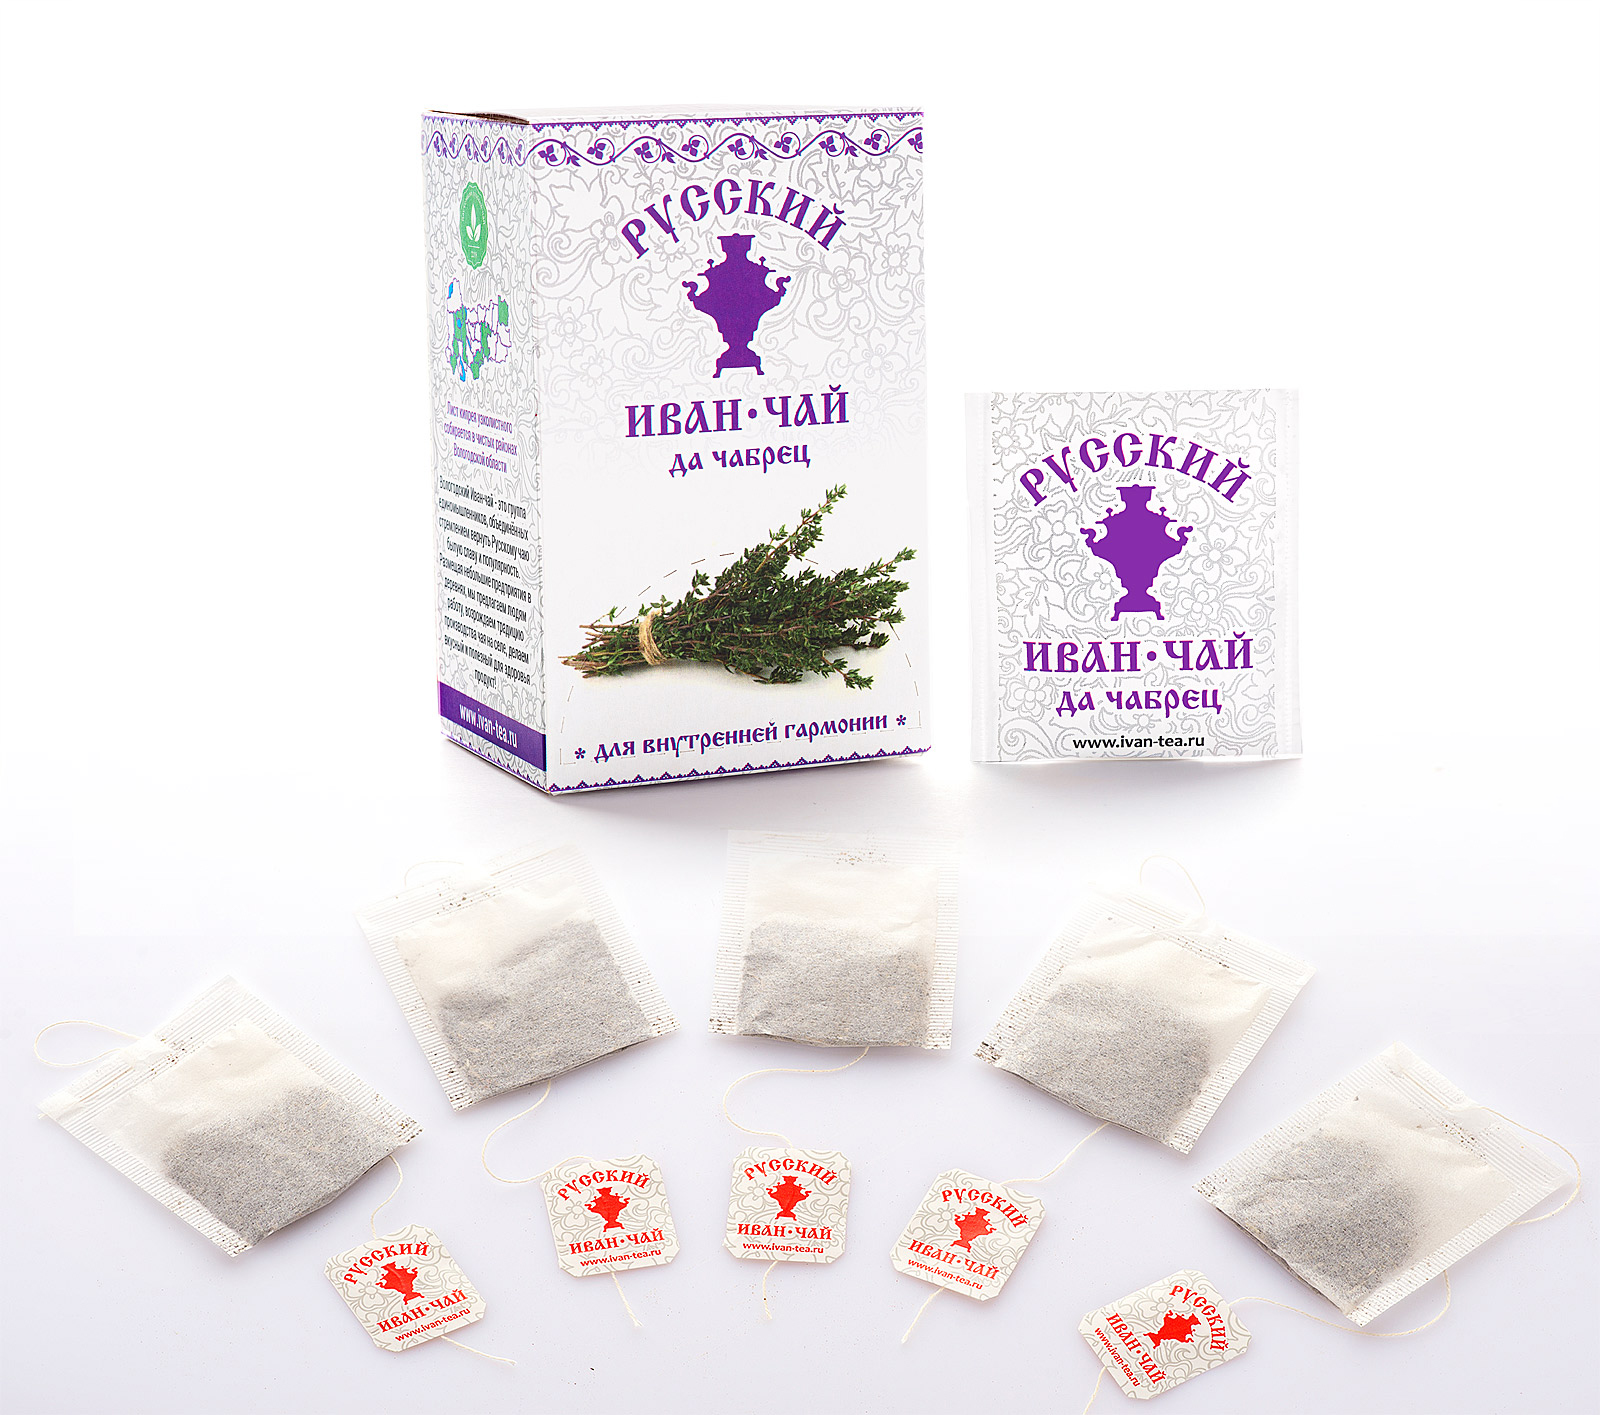 Russian Ivan-Tea & Thyme Infusion, available in teabags